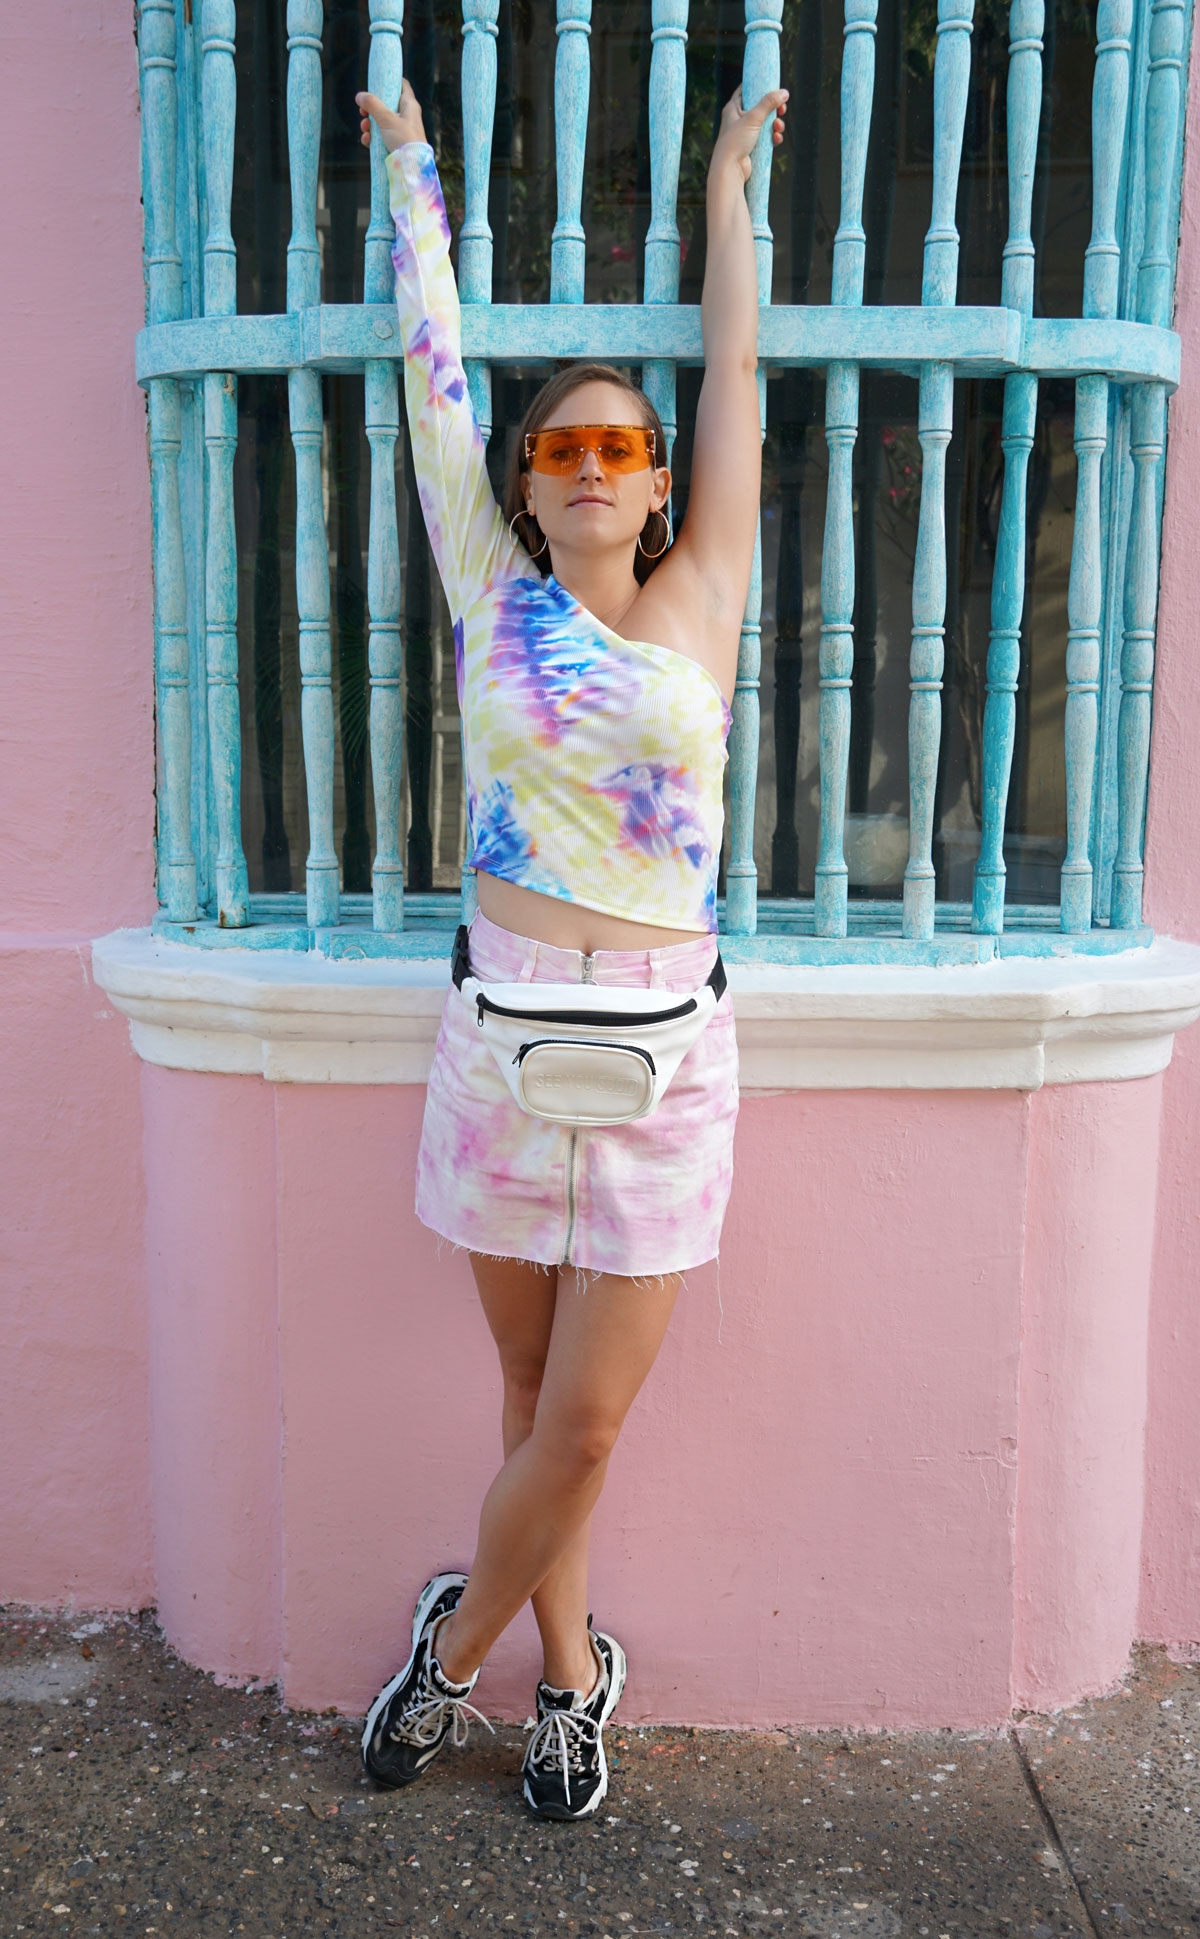 Andrea Steiner from fashion blog Strawberries 'n' Champagne based in Switzerland is wearing a complete tie dye pattern outfit with a white fanny pack, a orange sunglasses and sneakers.